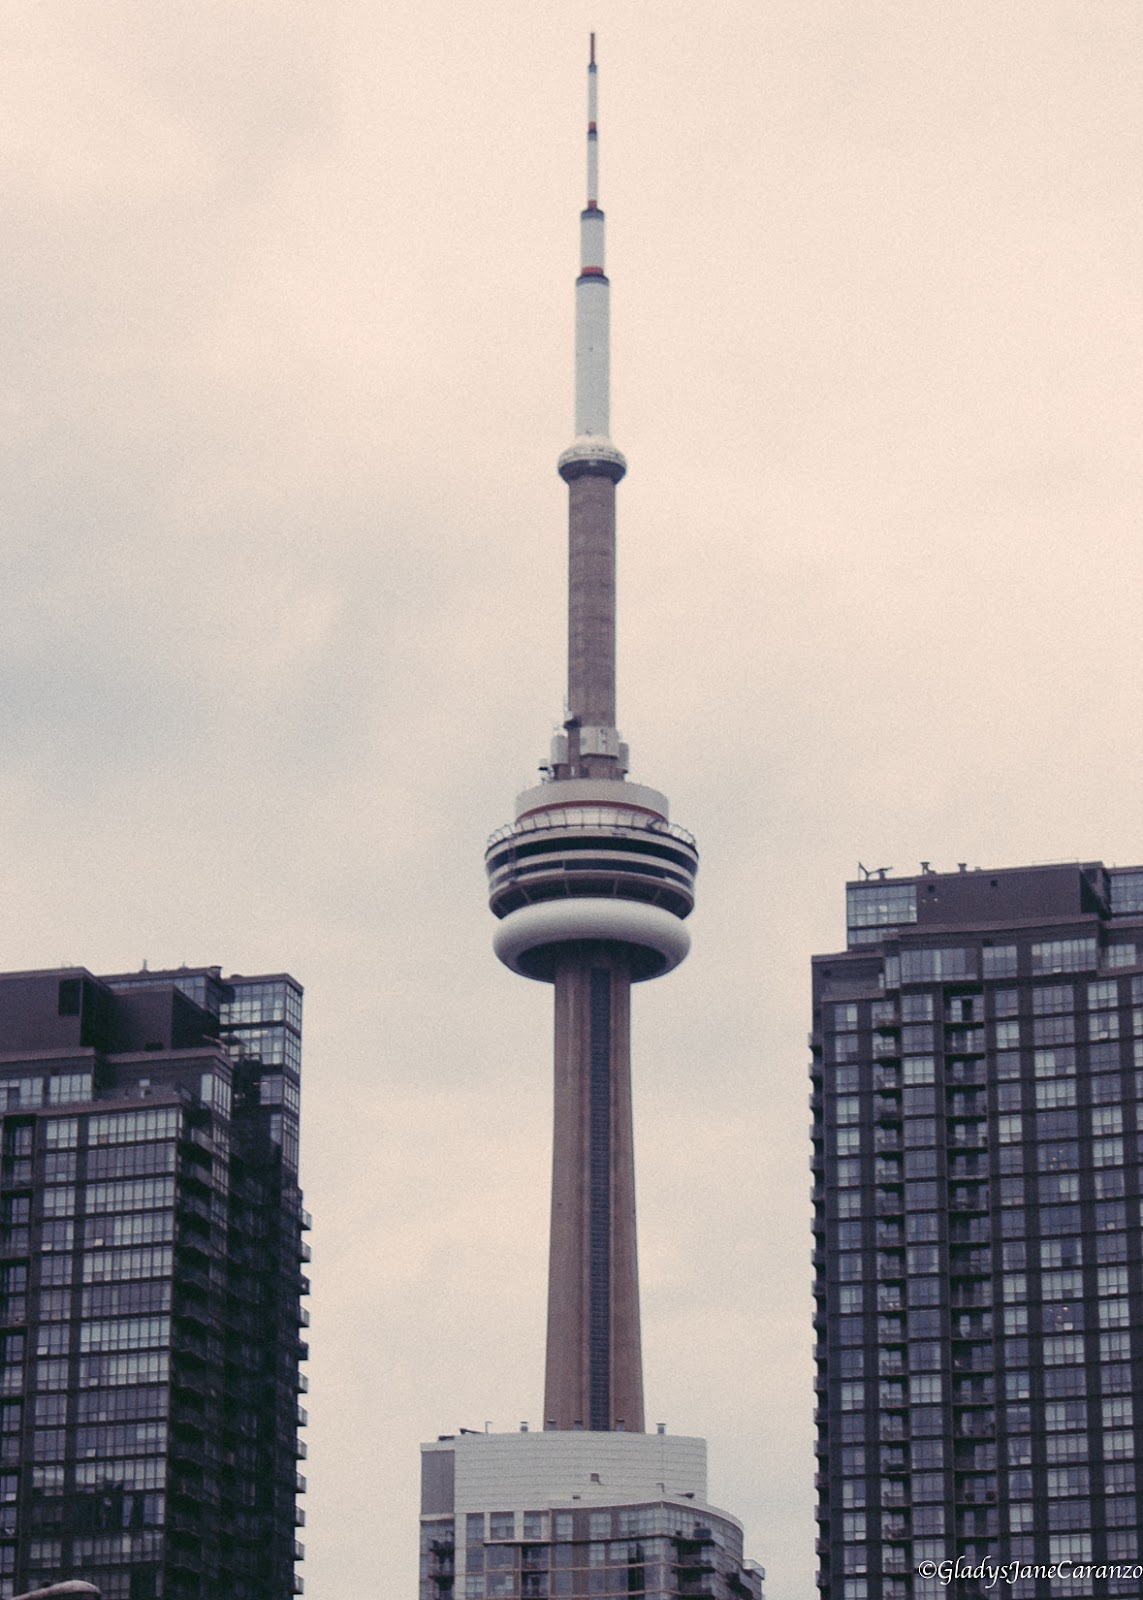 Downtown Toronto Attractions You Shouldn't Miss